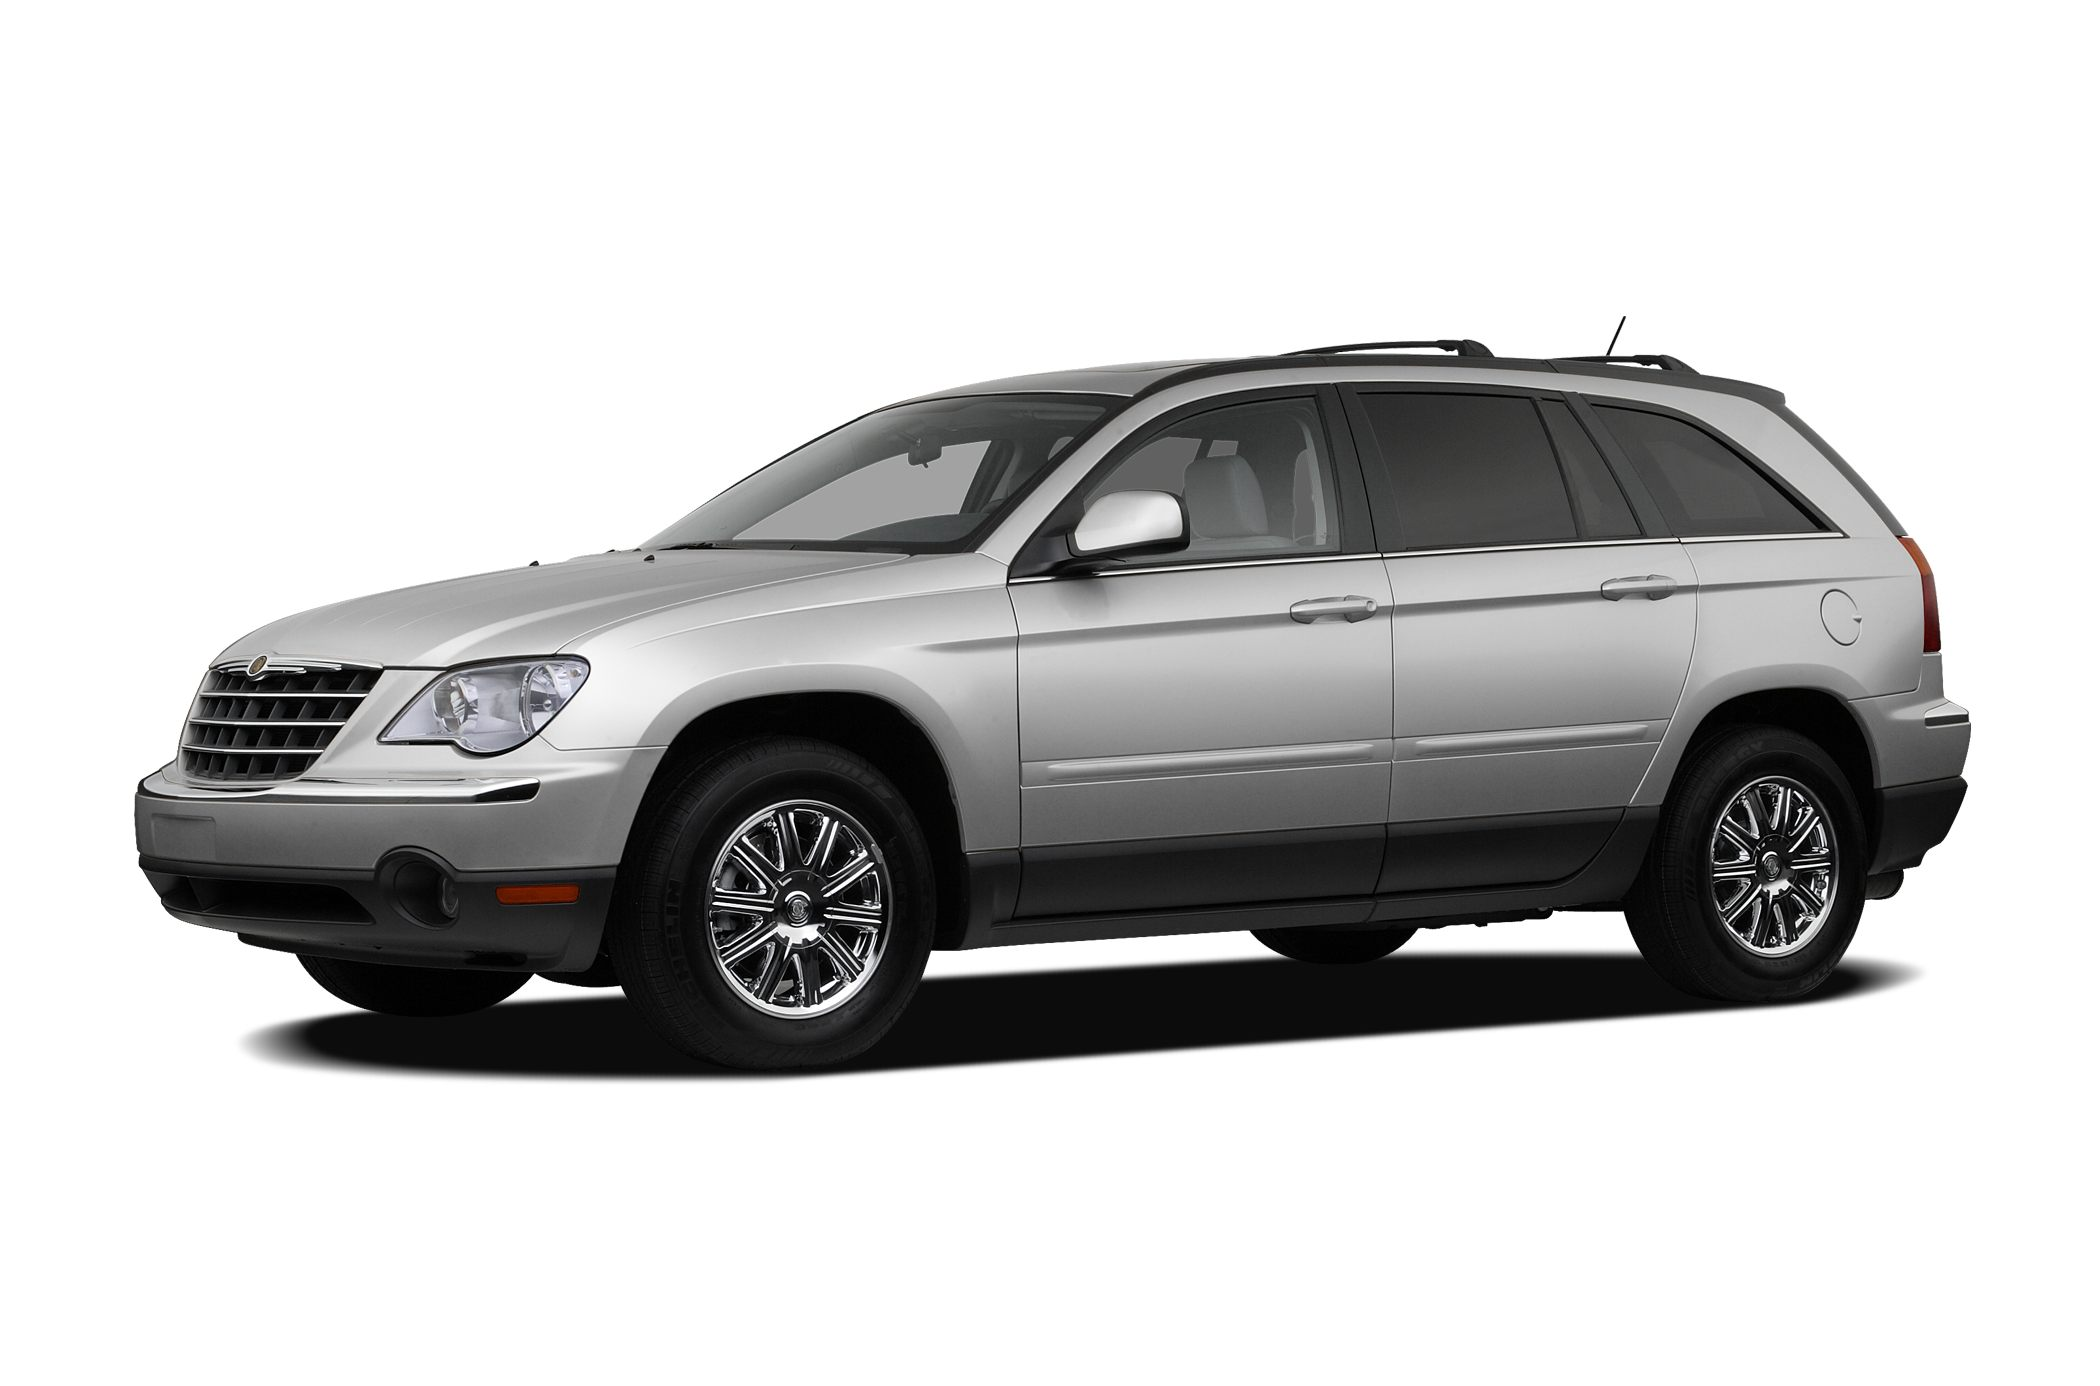 2007 Chrysler Pacifica Touring SUV for sale in Daytona Beach for $9,995 with 33,238 miles